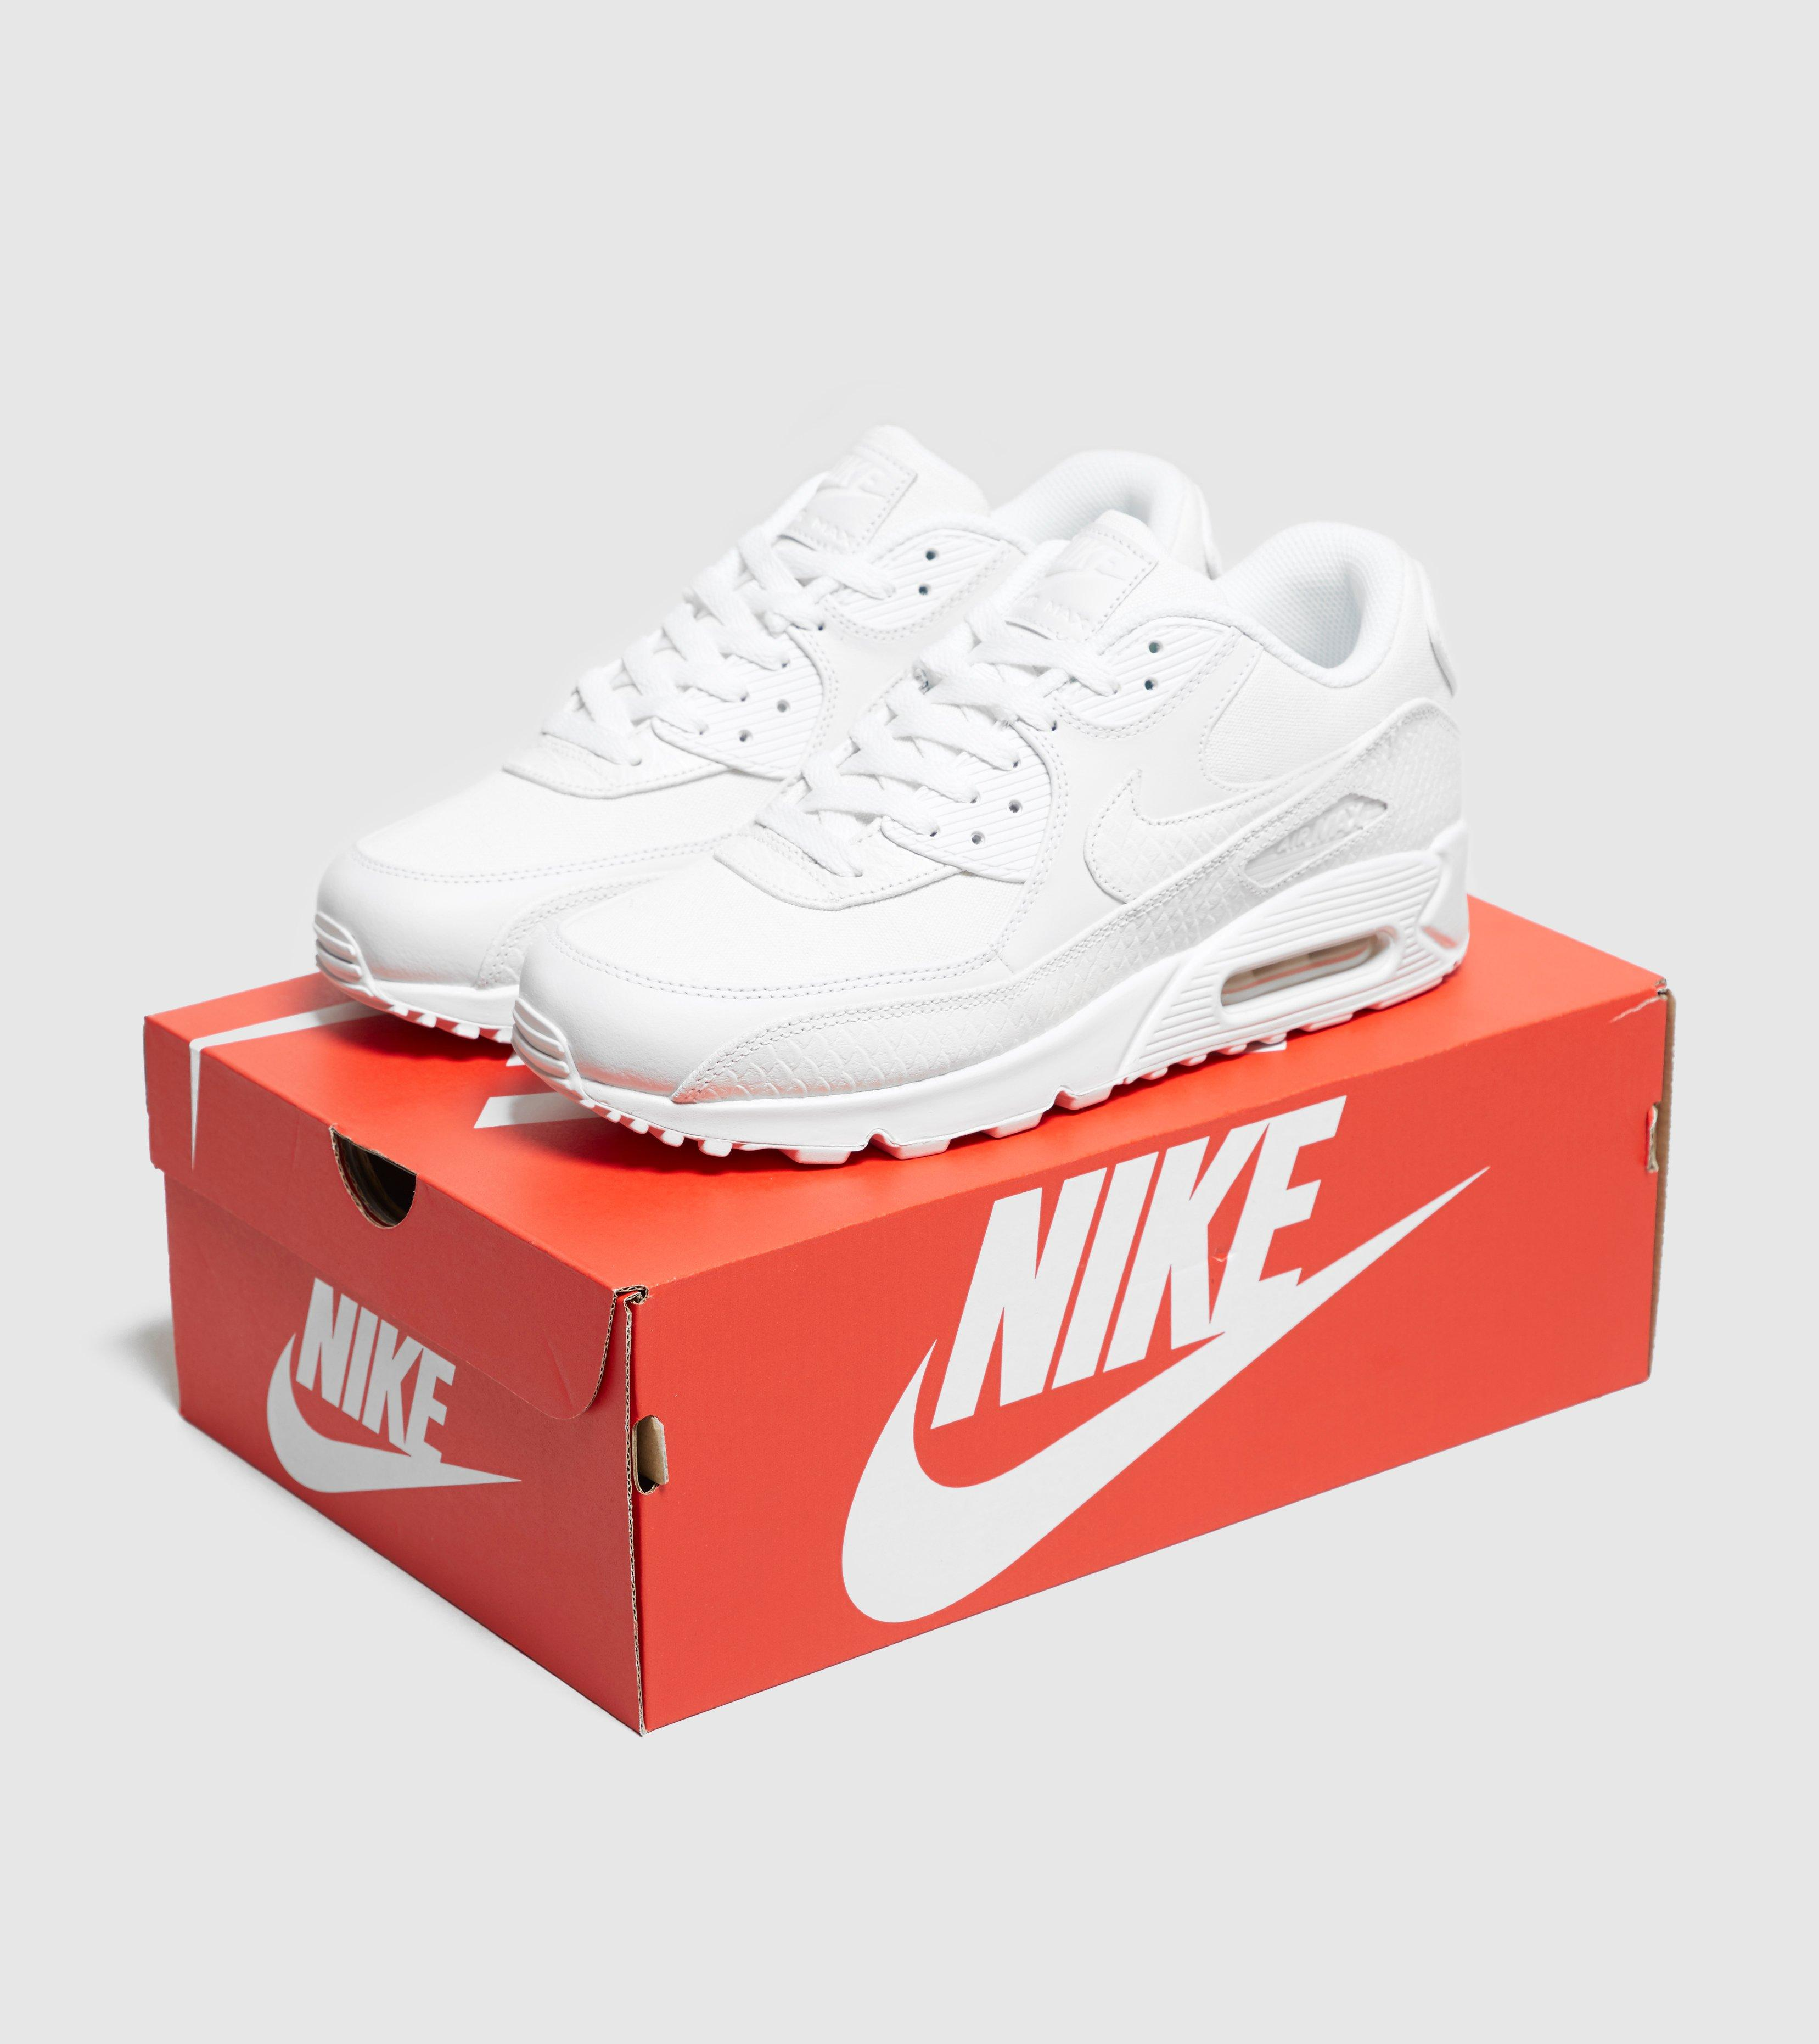 Meilleur -selling nike air max 90 rouge pas cher 0AH30